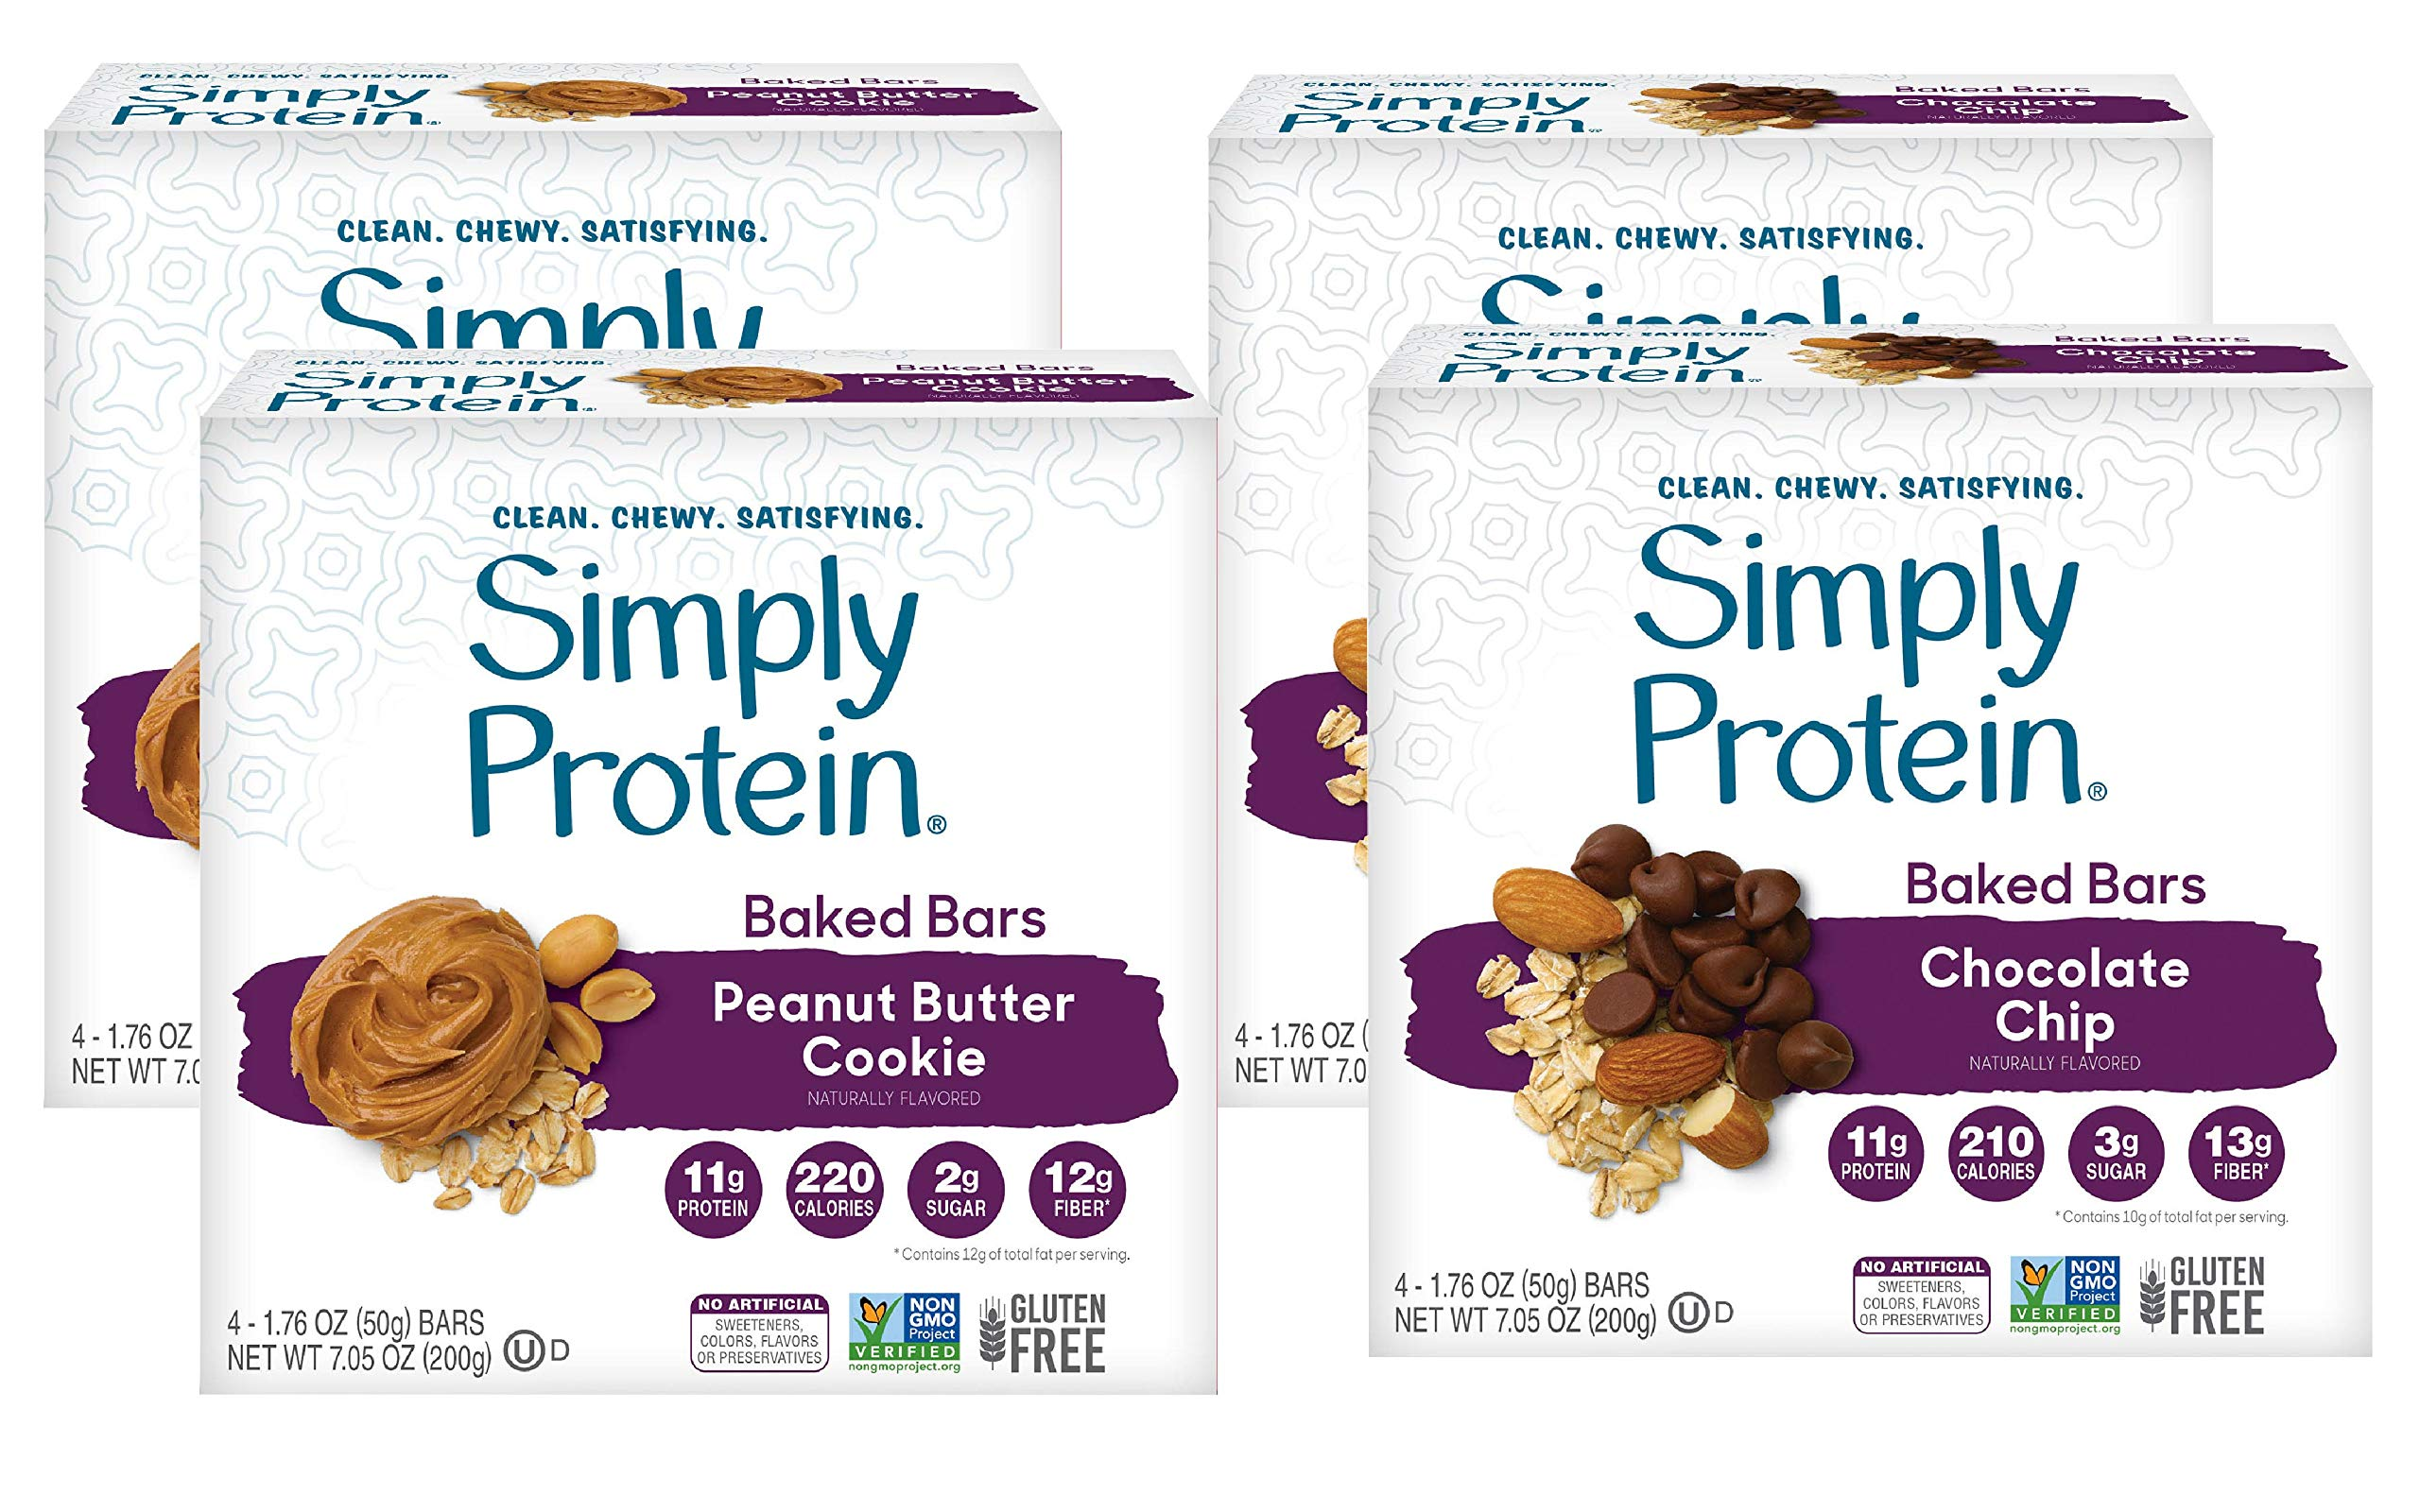 SimplyProtein Baked Bar Singles. Clean, Dairy Free and Gluten Free Baked Bars with Plant Based Protein. (16 Pack, Chocolate Chip & Peanut Butter Cookie)